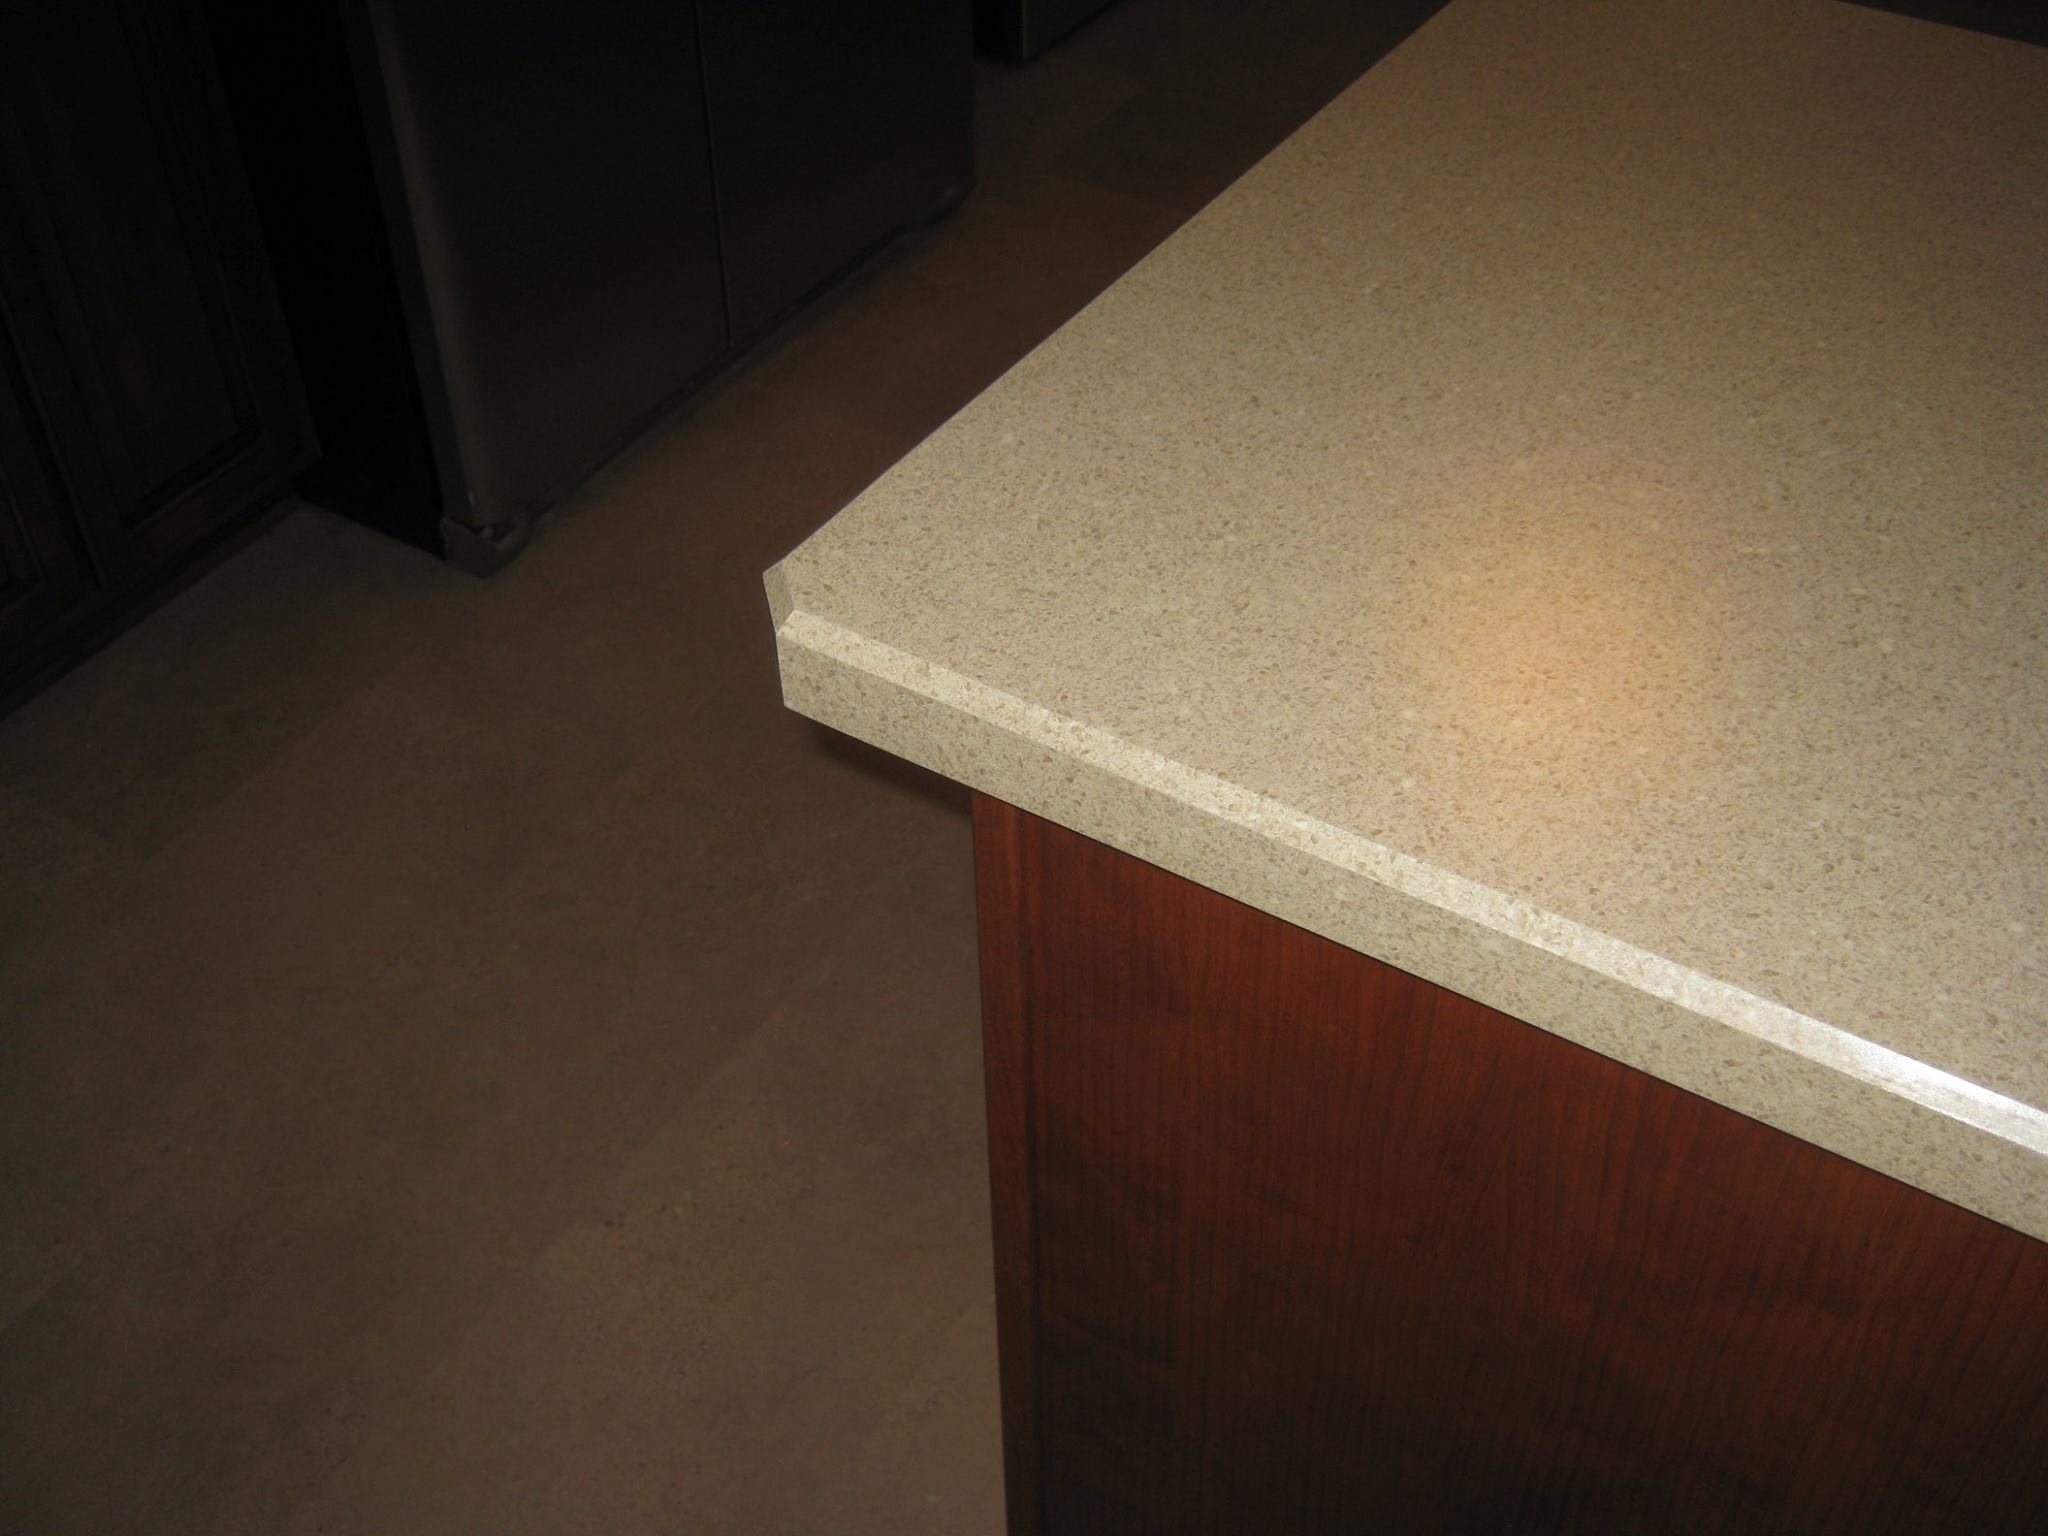 Guide To Choosing Countertops Pros And Cons